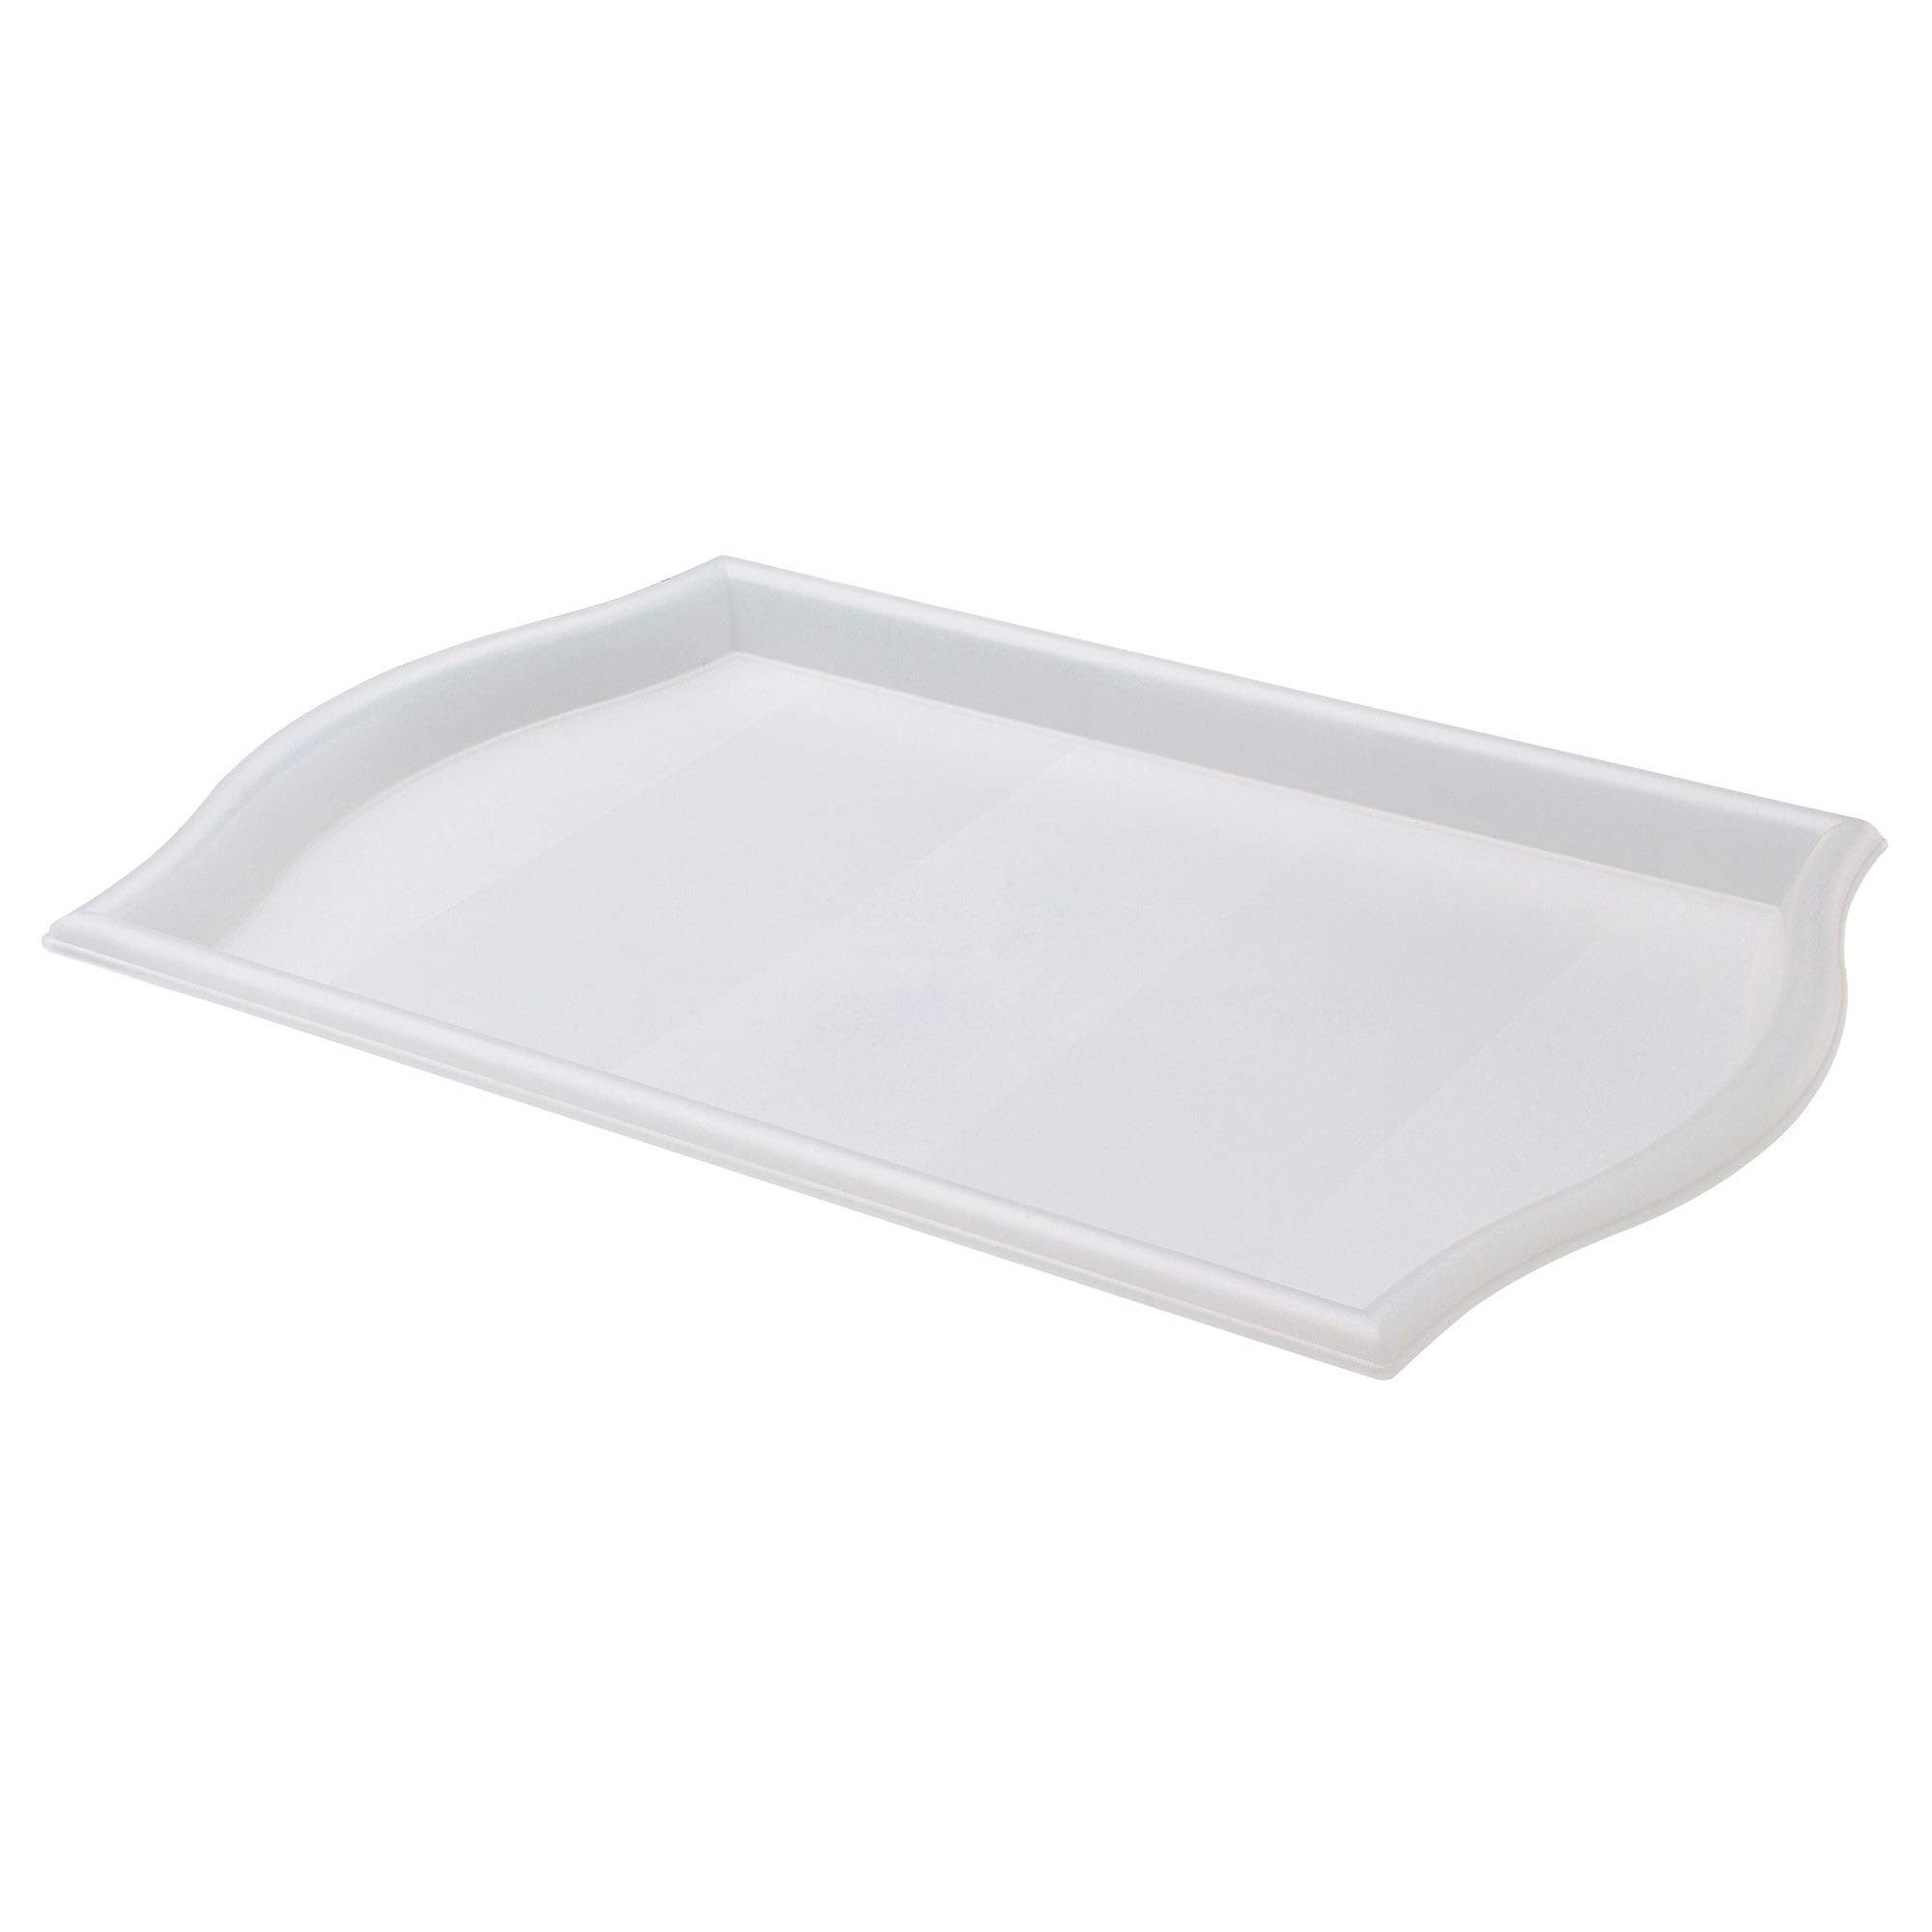 IKEA SMULA Tray- [FAMILY PACK of 4] TV Tray, Lap Tray, Patio, Breakfast in Bed - Translucent Polypropylene by IKEA